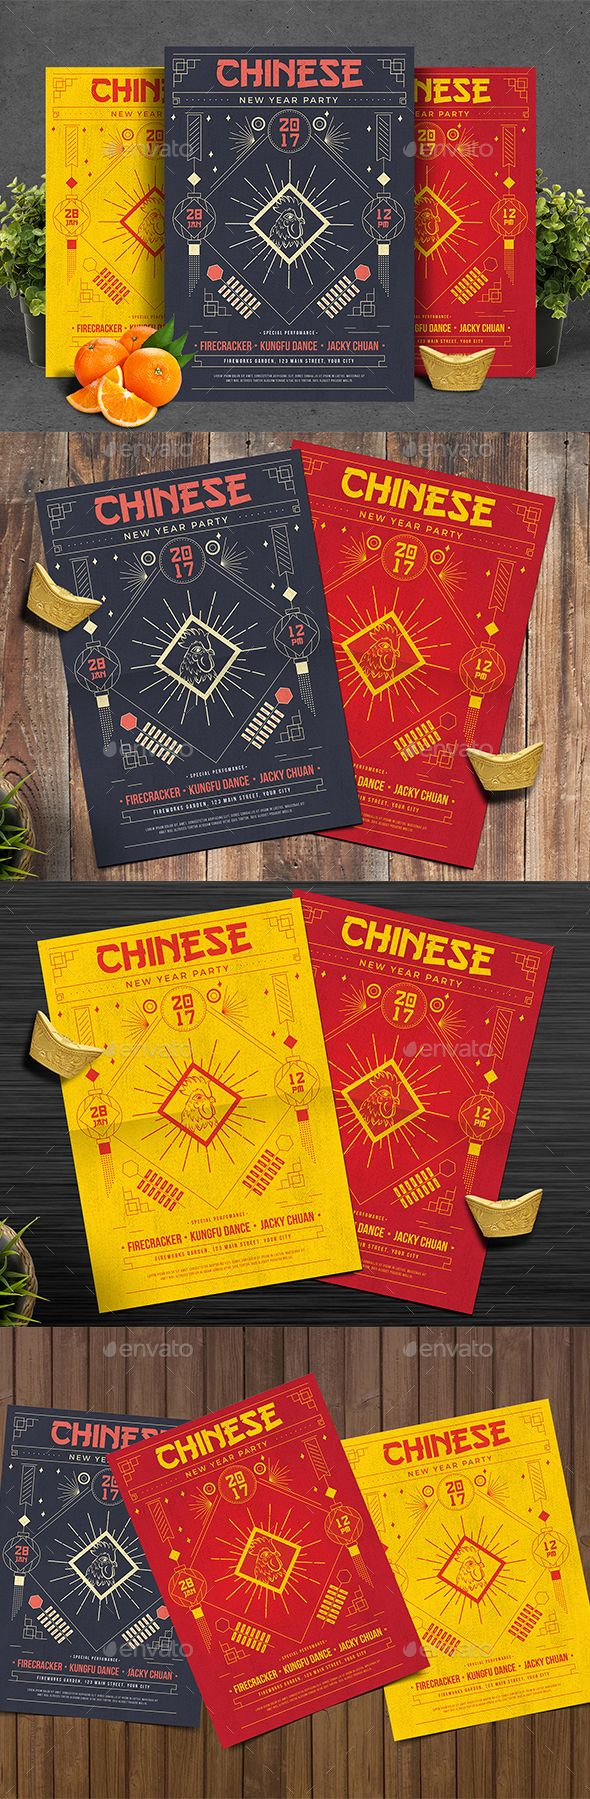 Chinese New Year Party — Photoshop PSD #shanghai #chinese zodiac • Download ➝ https://graphicriver.net/item/chinese-new-year-party/19216698?ref=pxcr